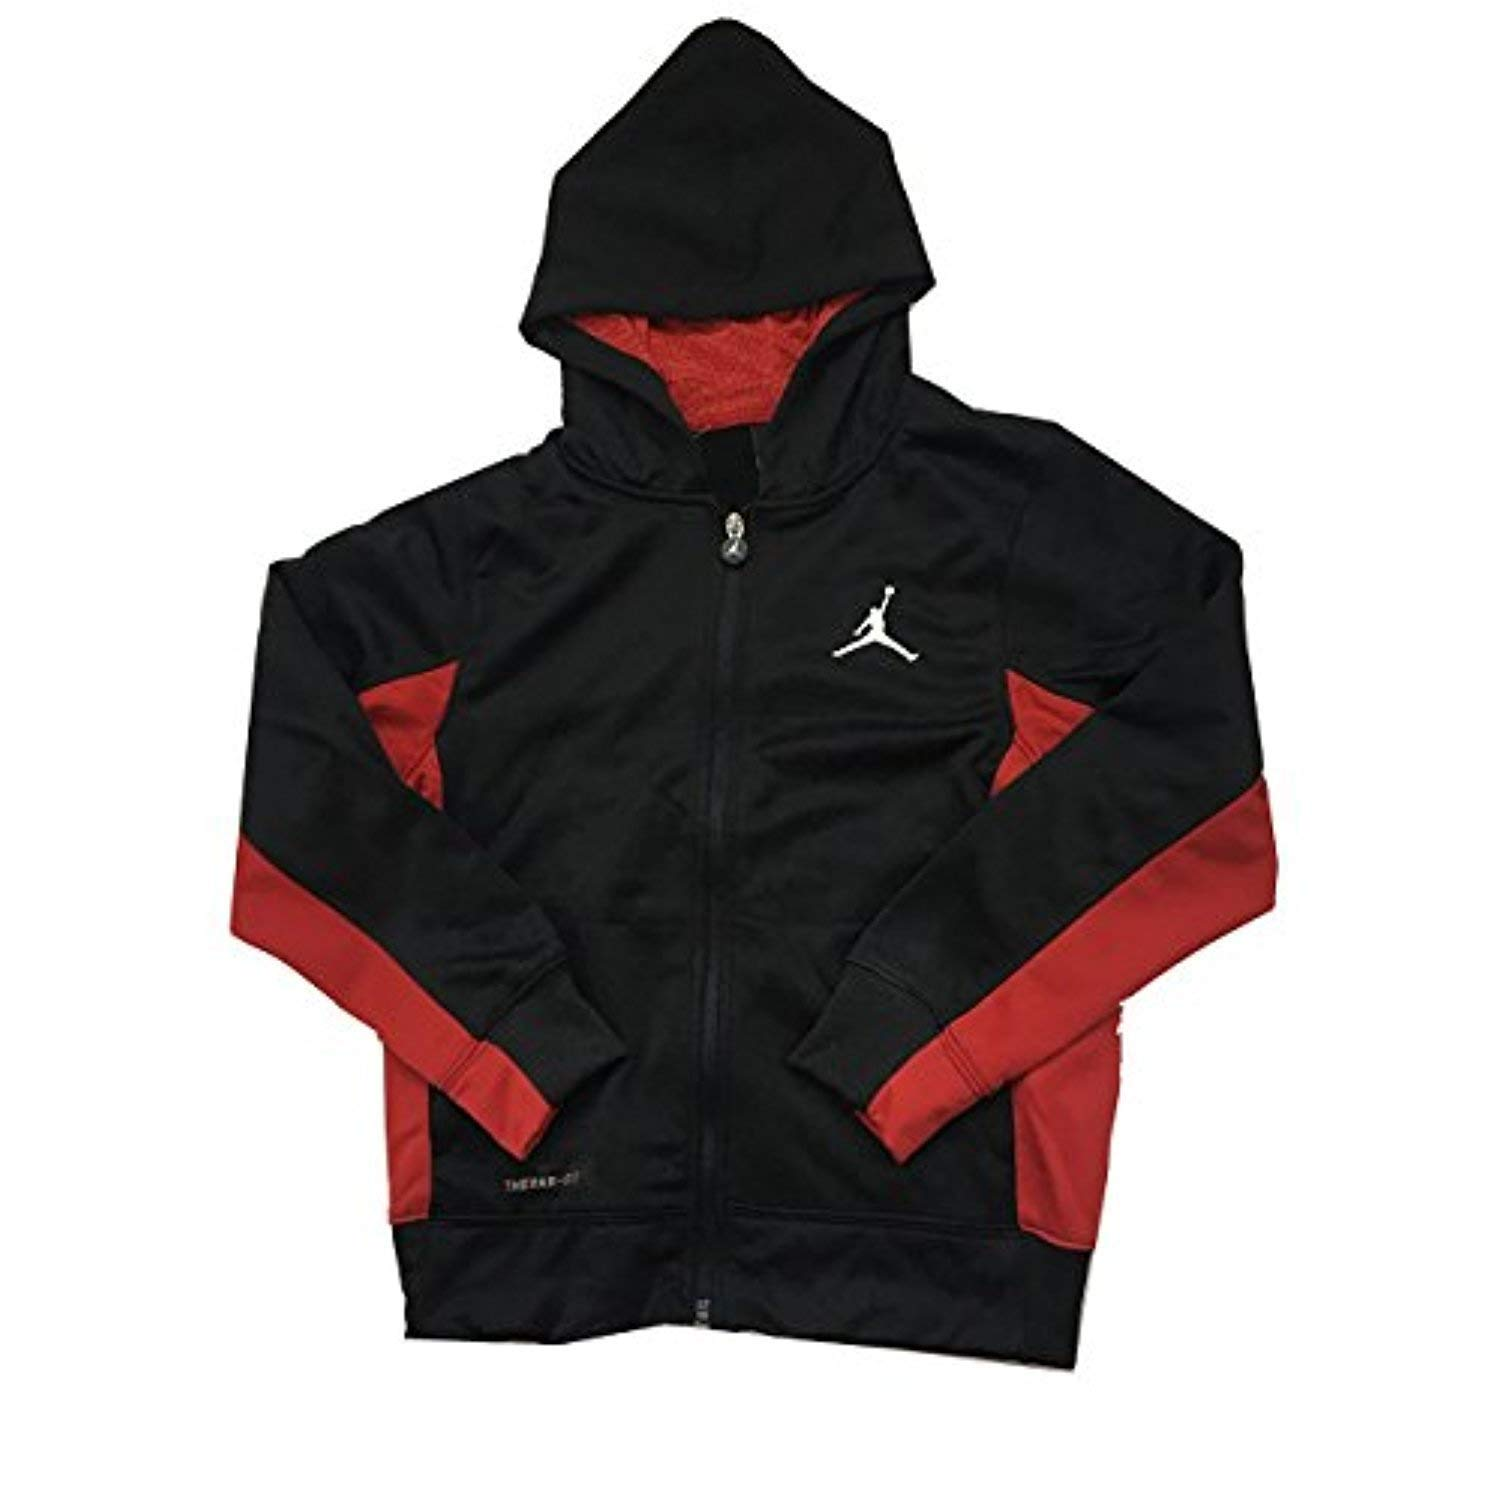 Air Jordan Big Boys Therma-Fit Hoodie Black/Red Size Medium (10-12 Years)